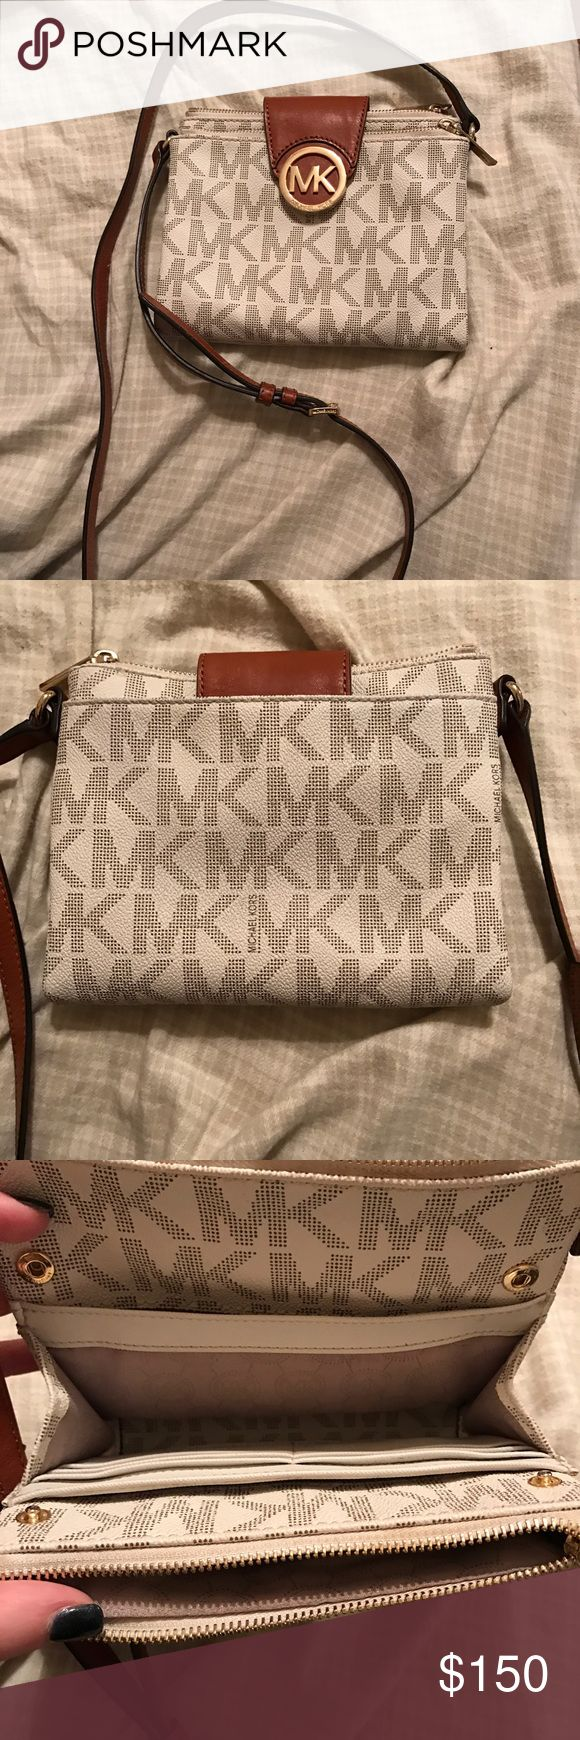 Michael Kors crossbody. Small authentic cross body, in like new condition. Has two zipper pockets, a back pocket, and credit card and money compartments. Retails for $200. Michael Kors Bags Crossbody Bags